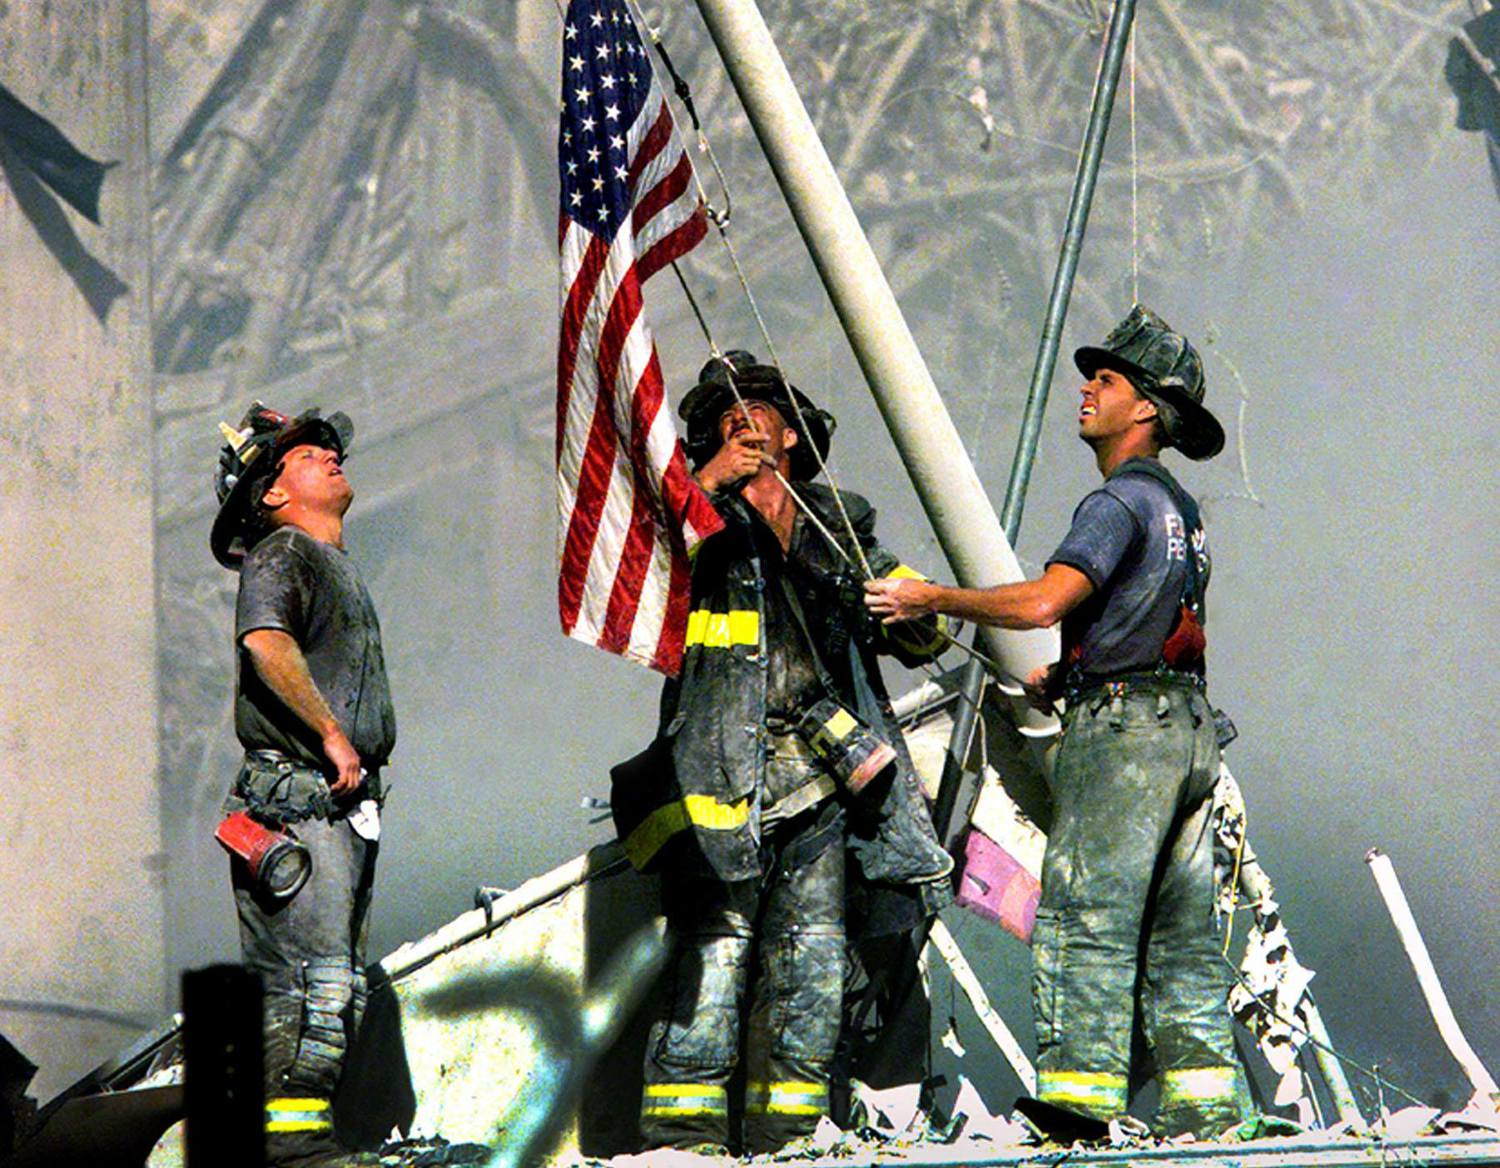 Missing 9/11 flag returns to Ground Zero site after 15 years